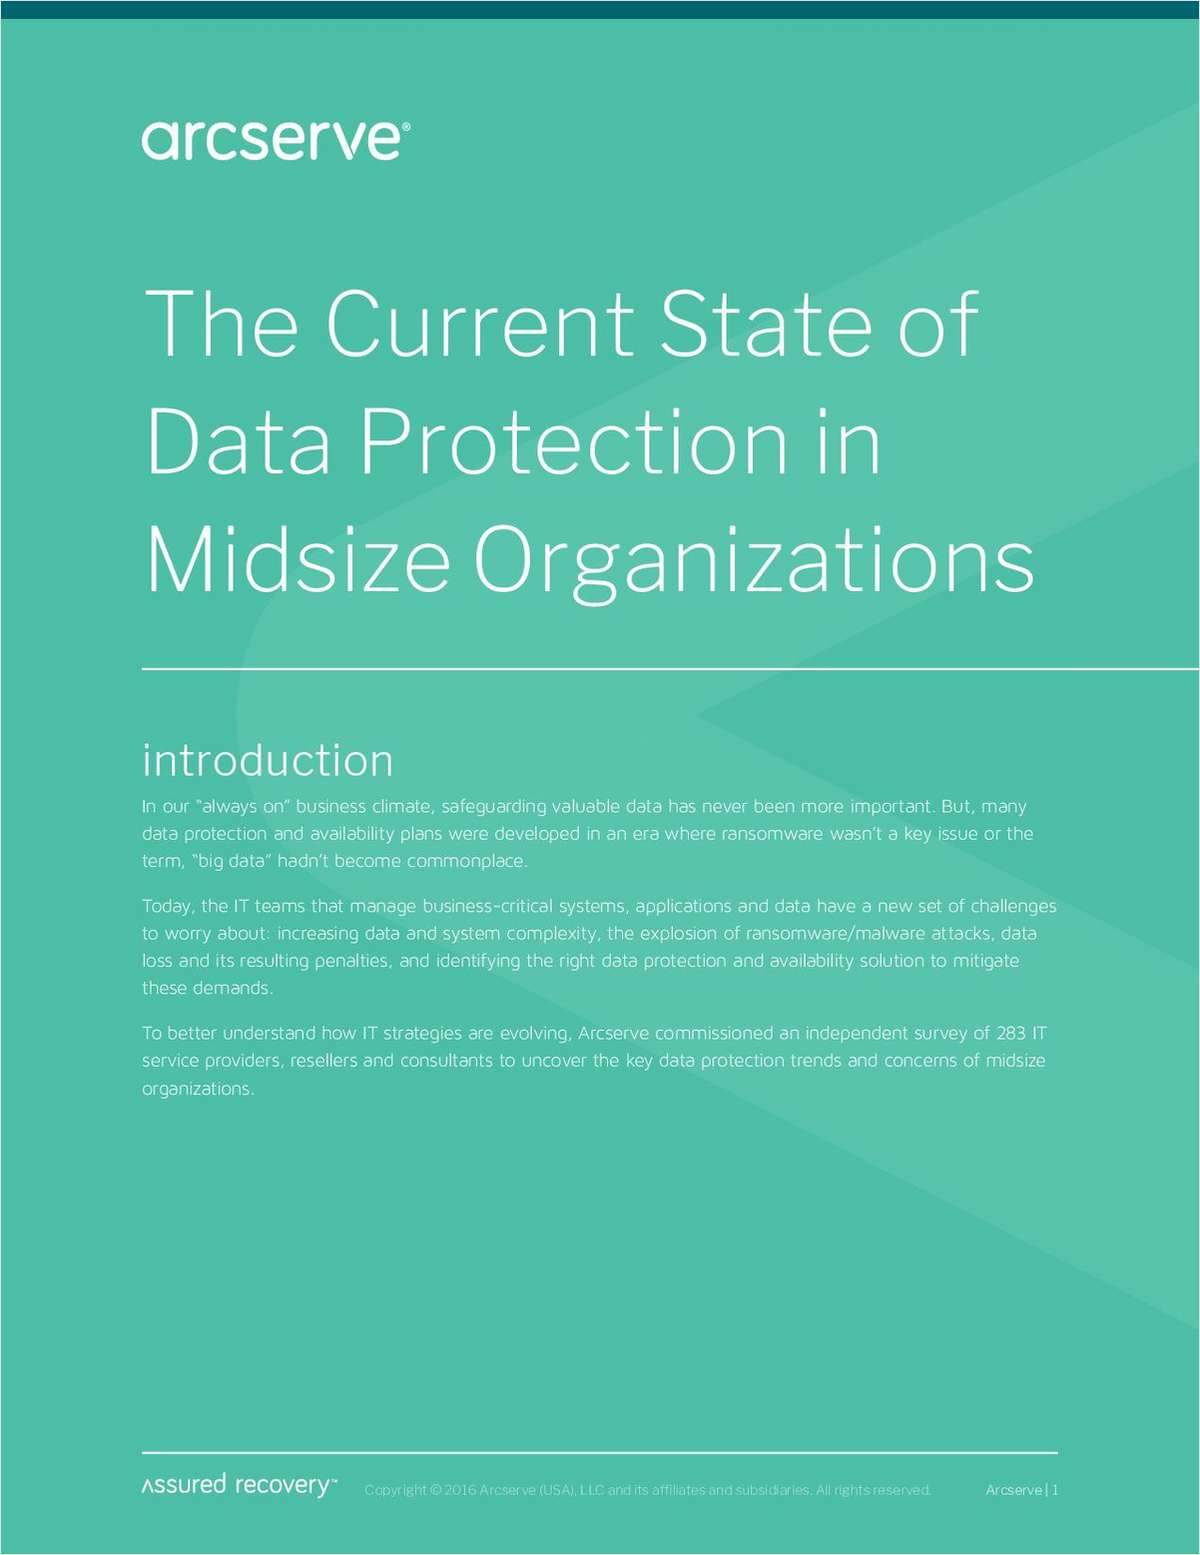 The Current State of Data Protection in Midsize Organizations